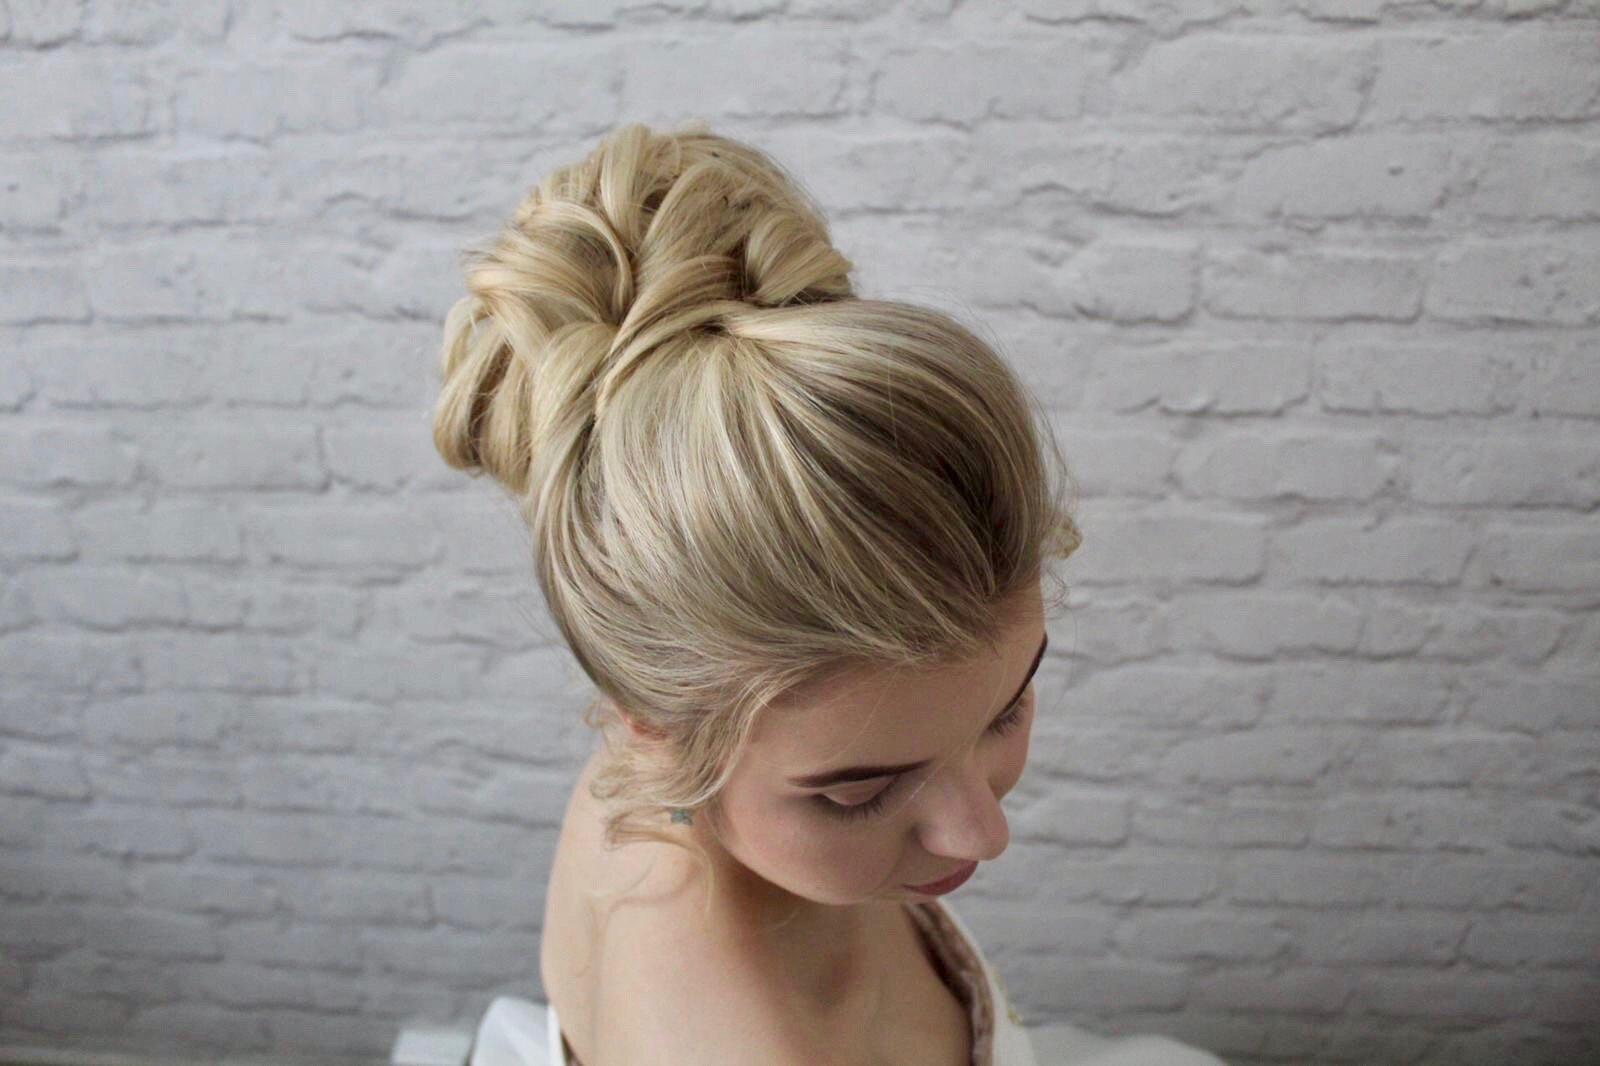 highbunforweddingsupdohairdresser bridal